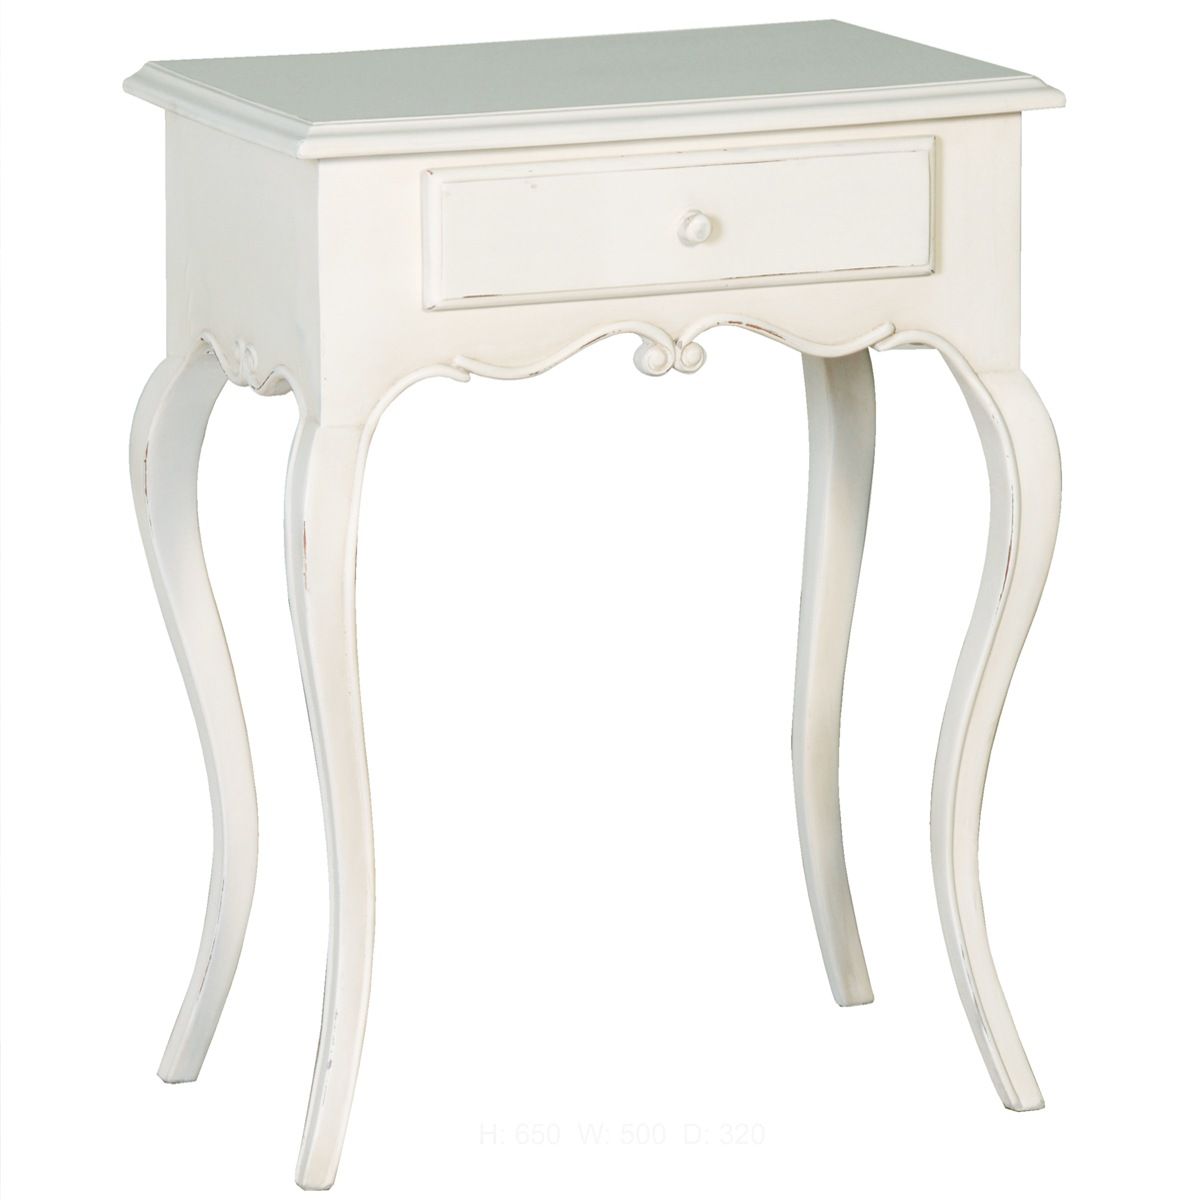 Outstanding White Bedside Table 1200 x 1200 · 235 kB · jpeg